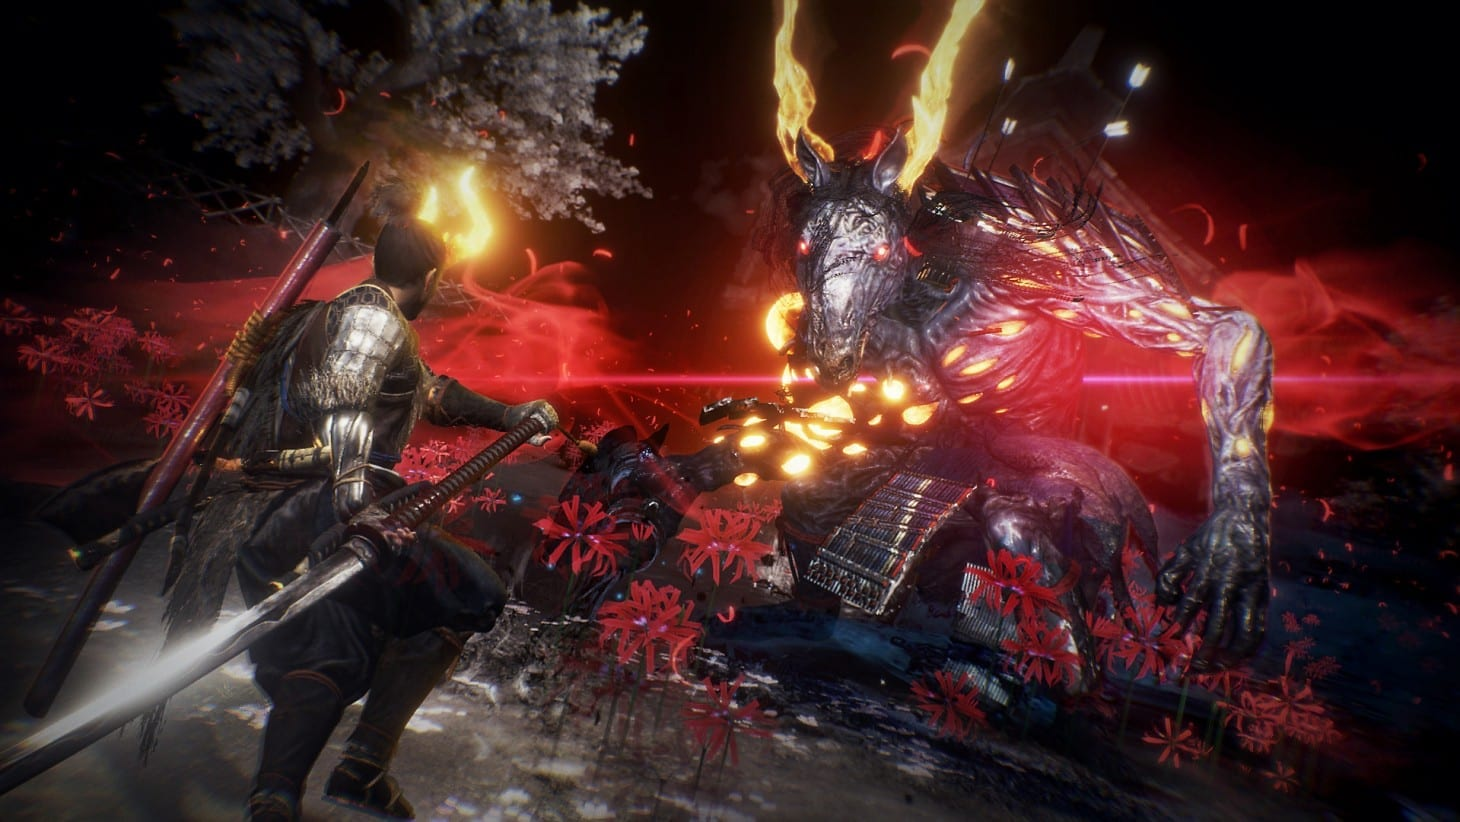 nioh 2, patch, update 1.05, patch notes